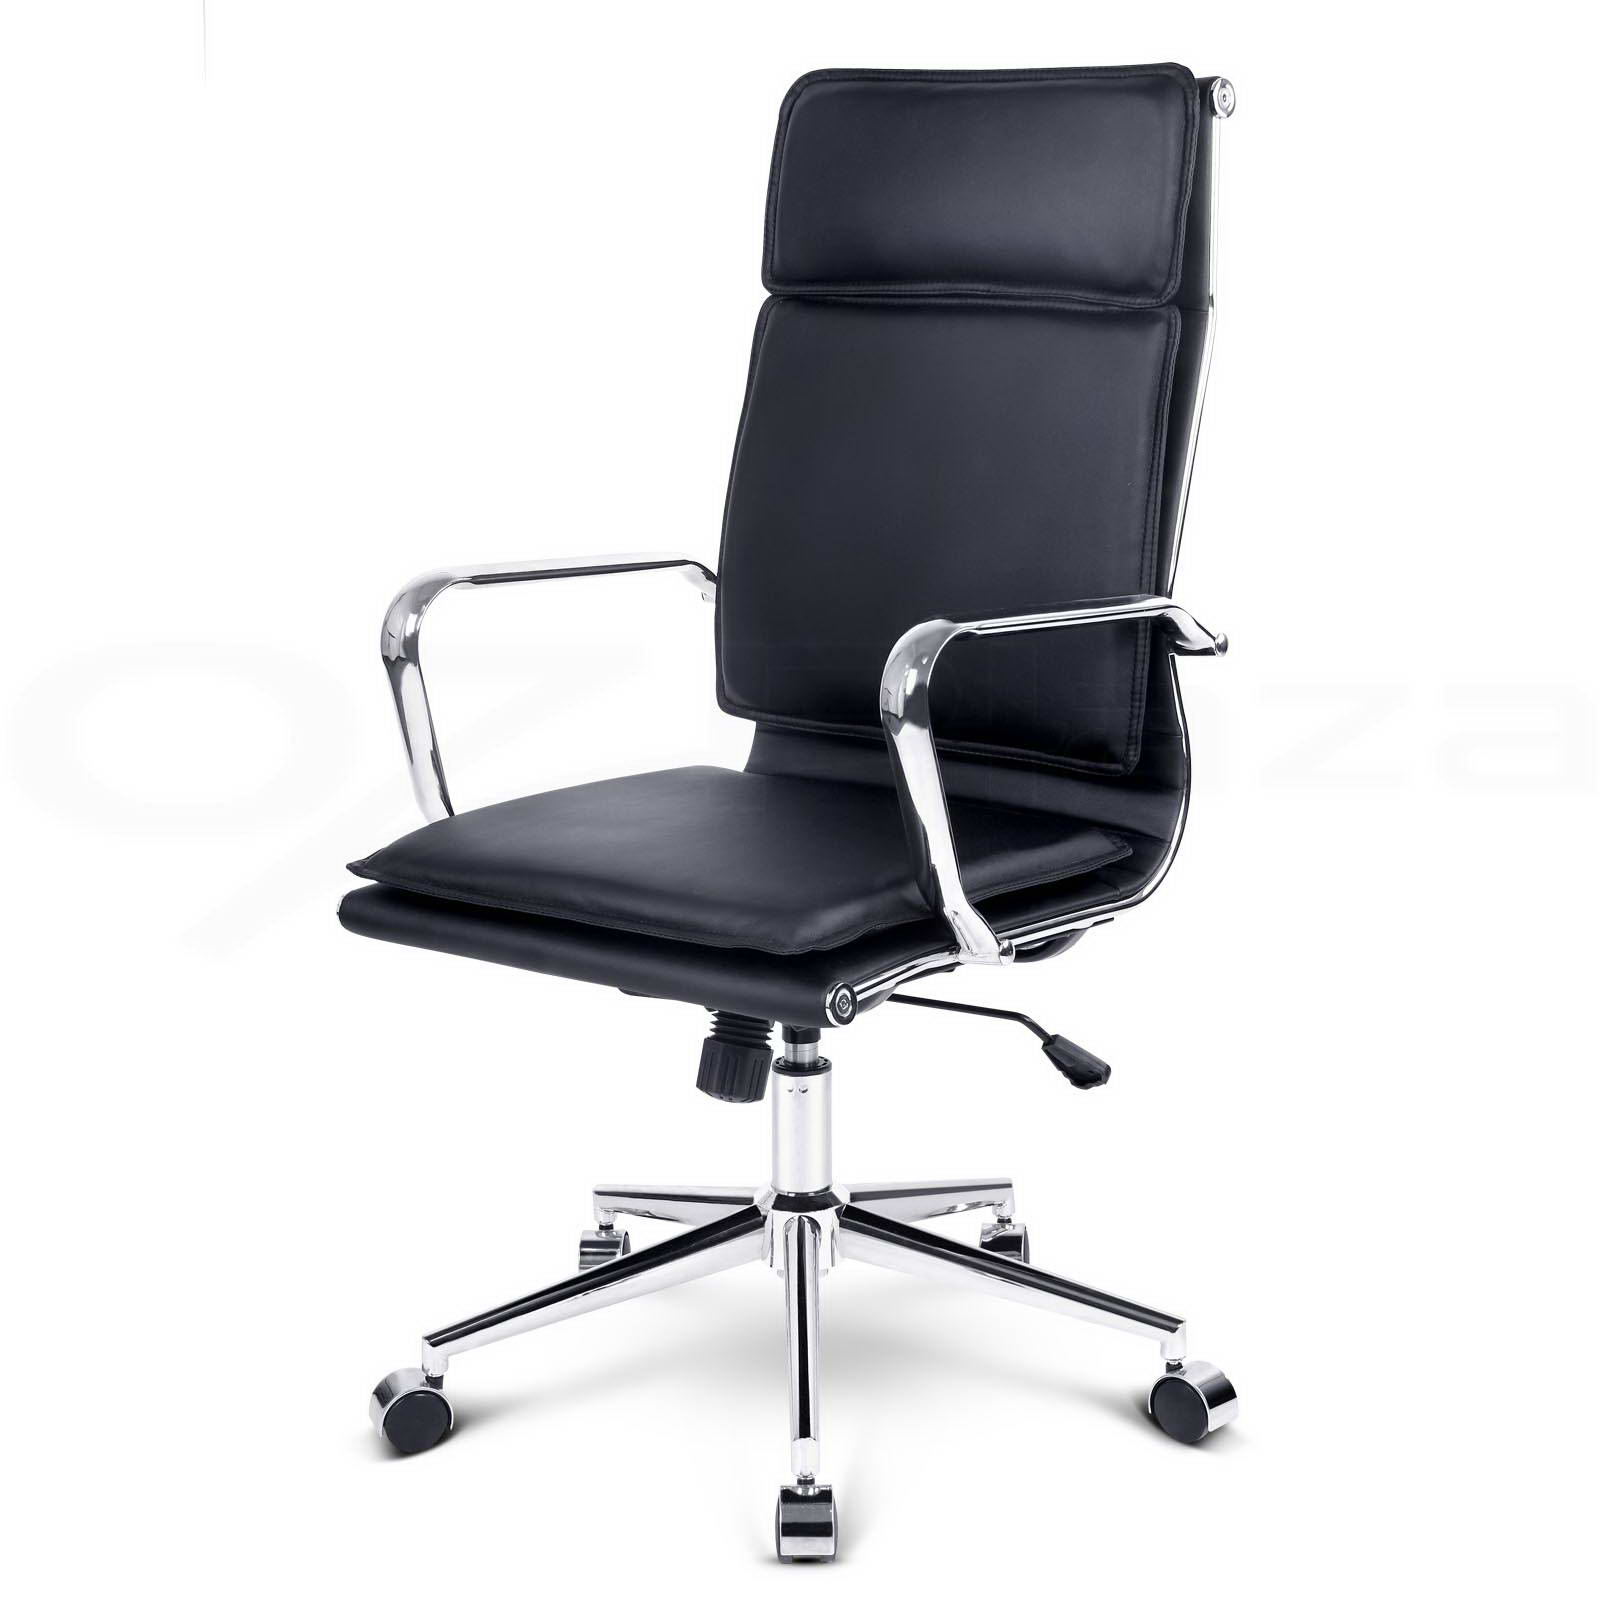 reclining office chairs australia chair cover rental charlotte nc executive computer pu faux leather recliner